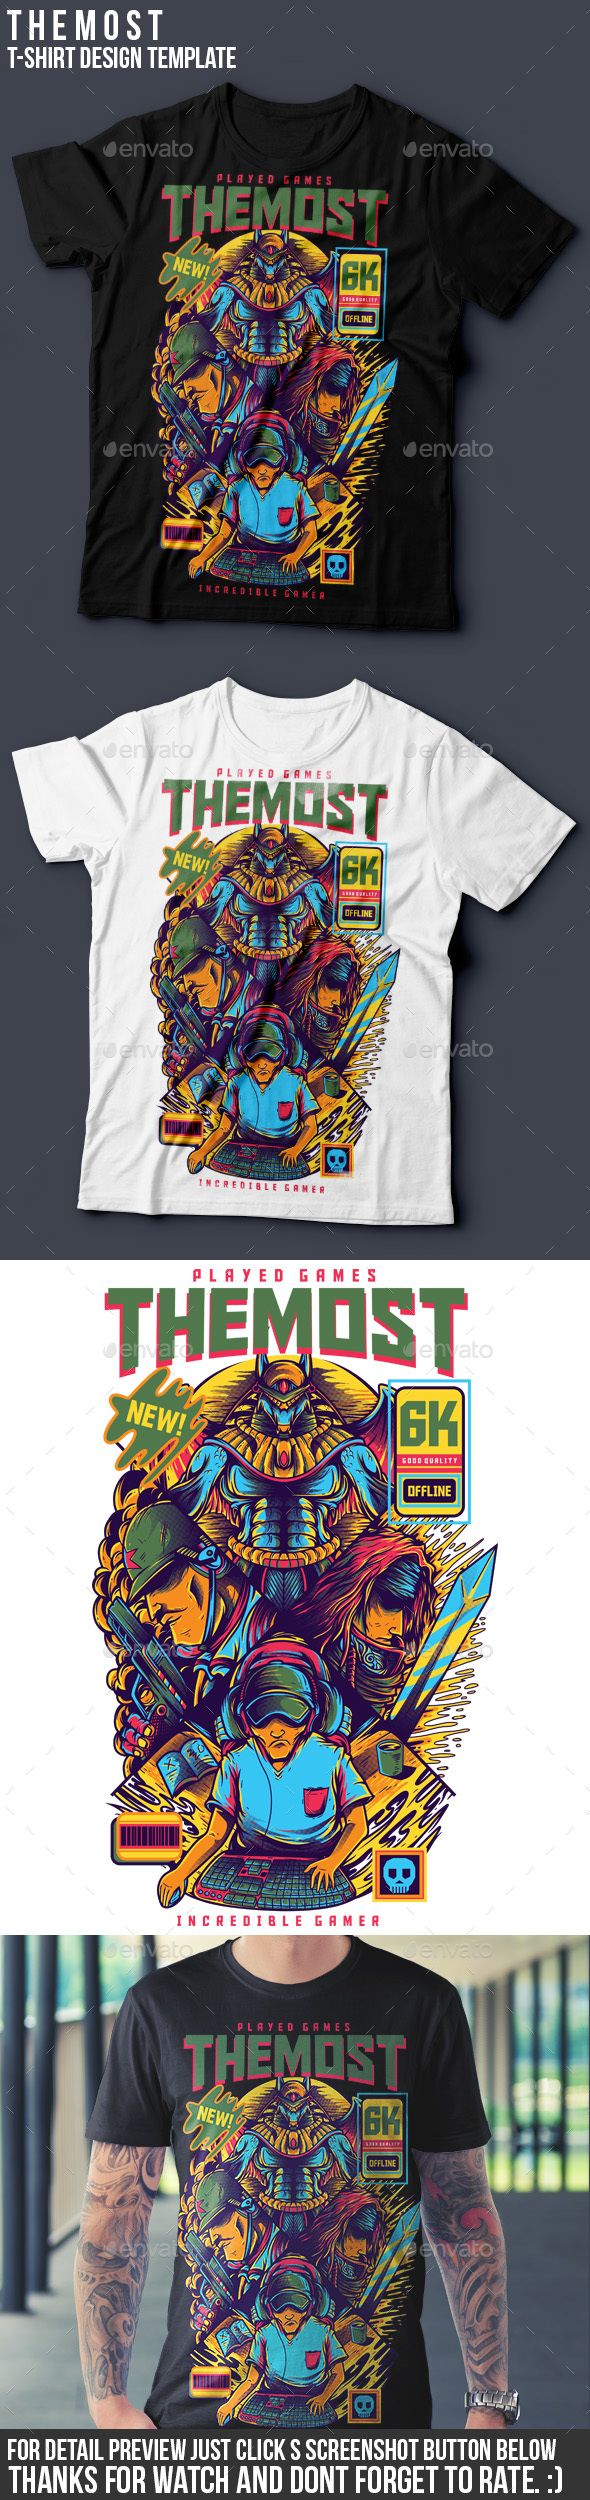 TheMost T-Shirt Design | Shirt designs, Ai illustrator and Template